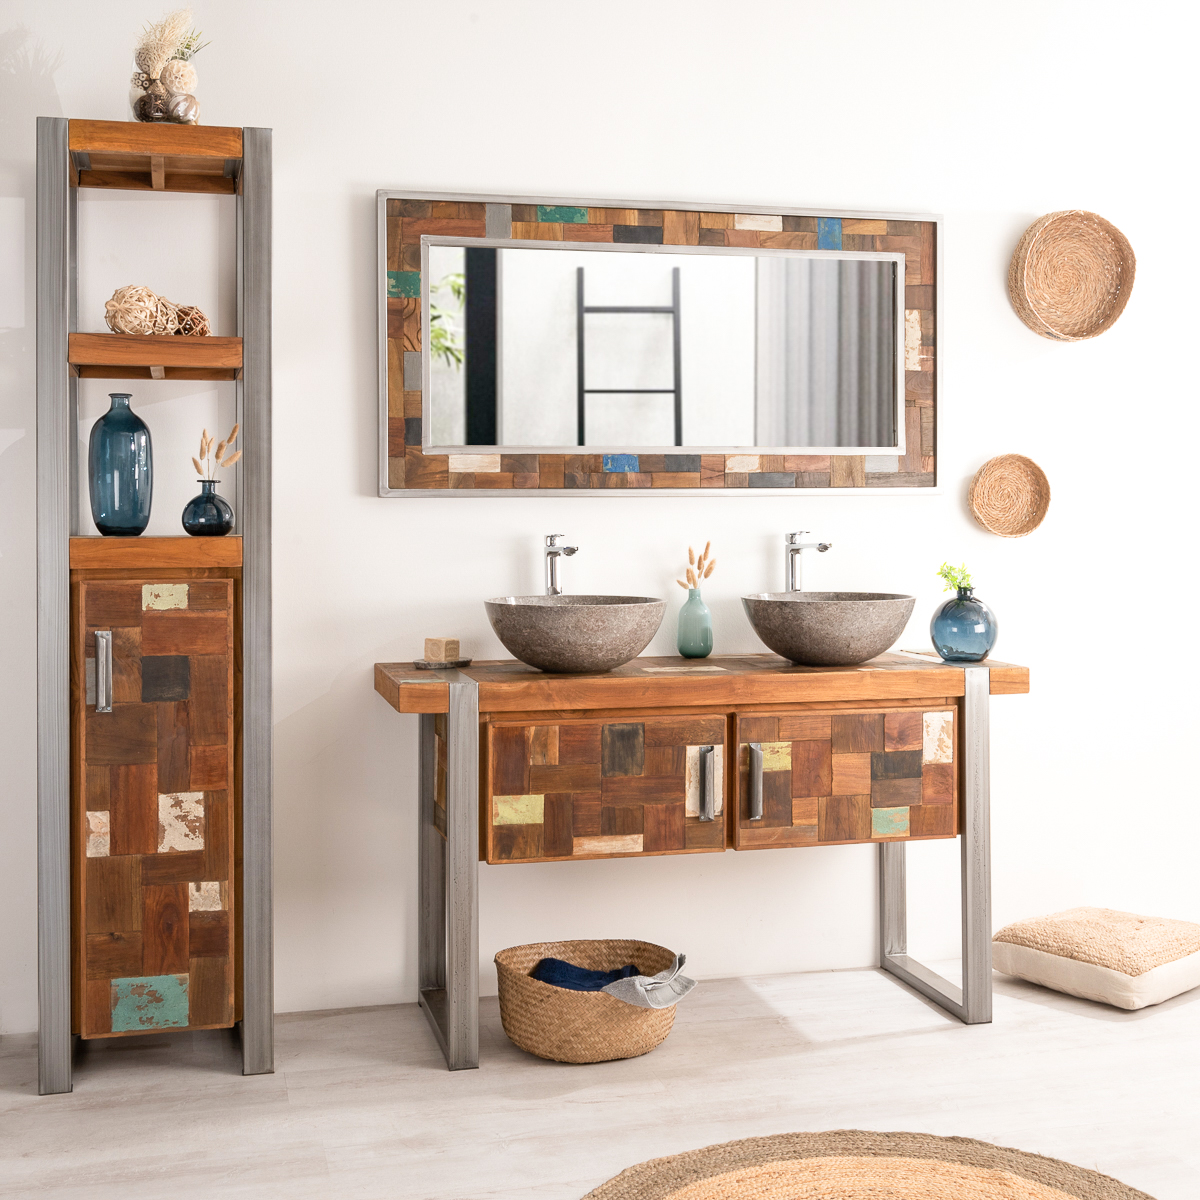 meuble rangement salle de bain castorama. Black Bedroom Furniture Sets. Home Design Ideas